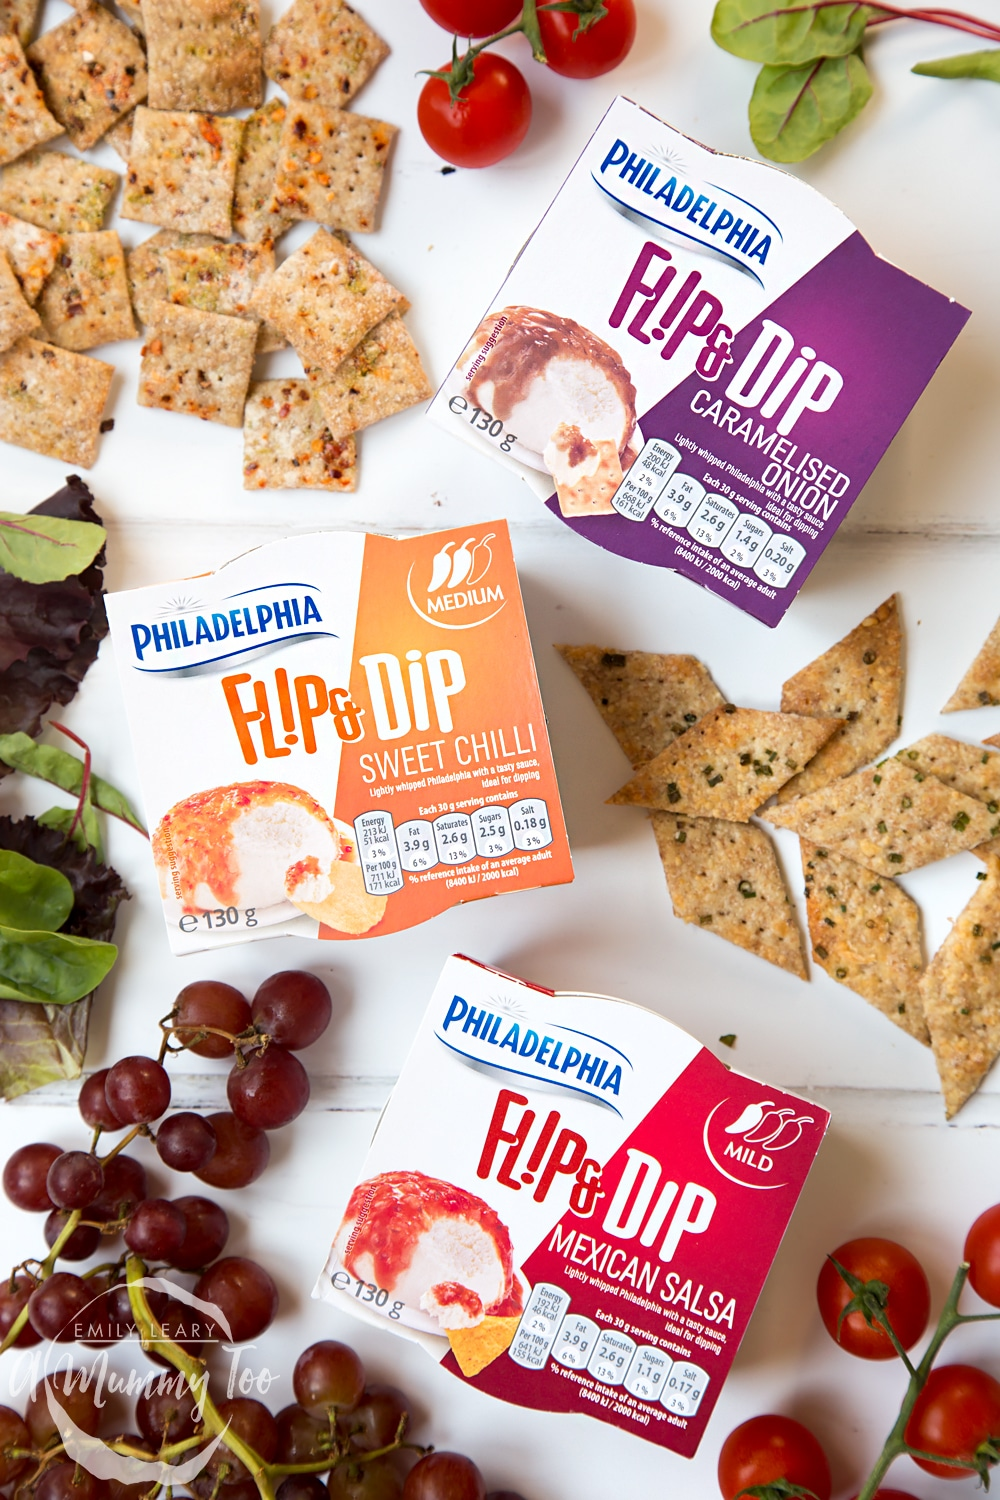 These lime and chilli crackers and gruyère and chive crackers go so well with Philadelphia Flip & Dip dips including carmelised onion, sweet chilli and mexican salsa